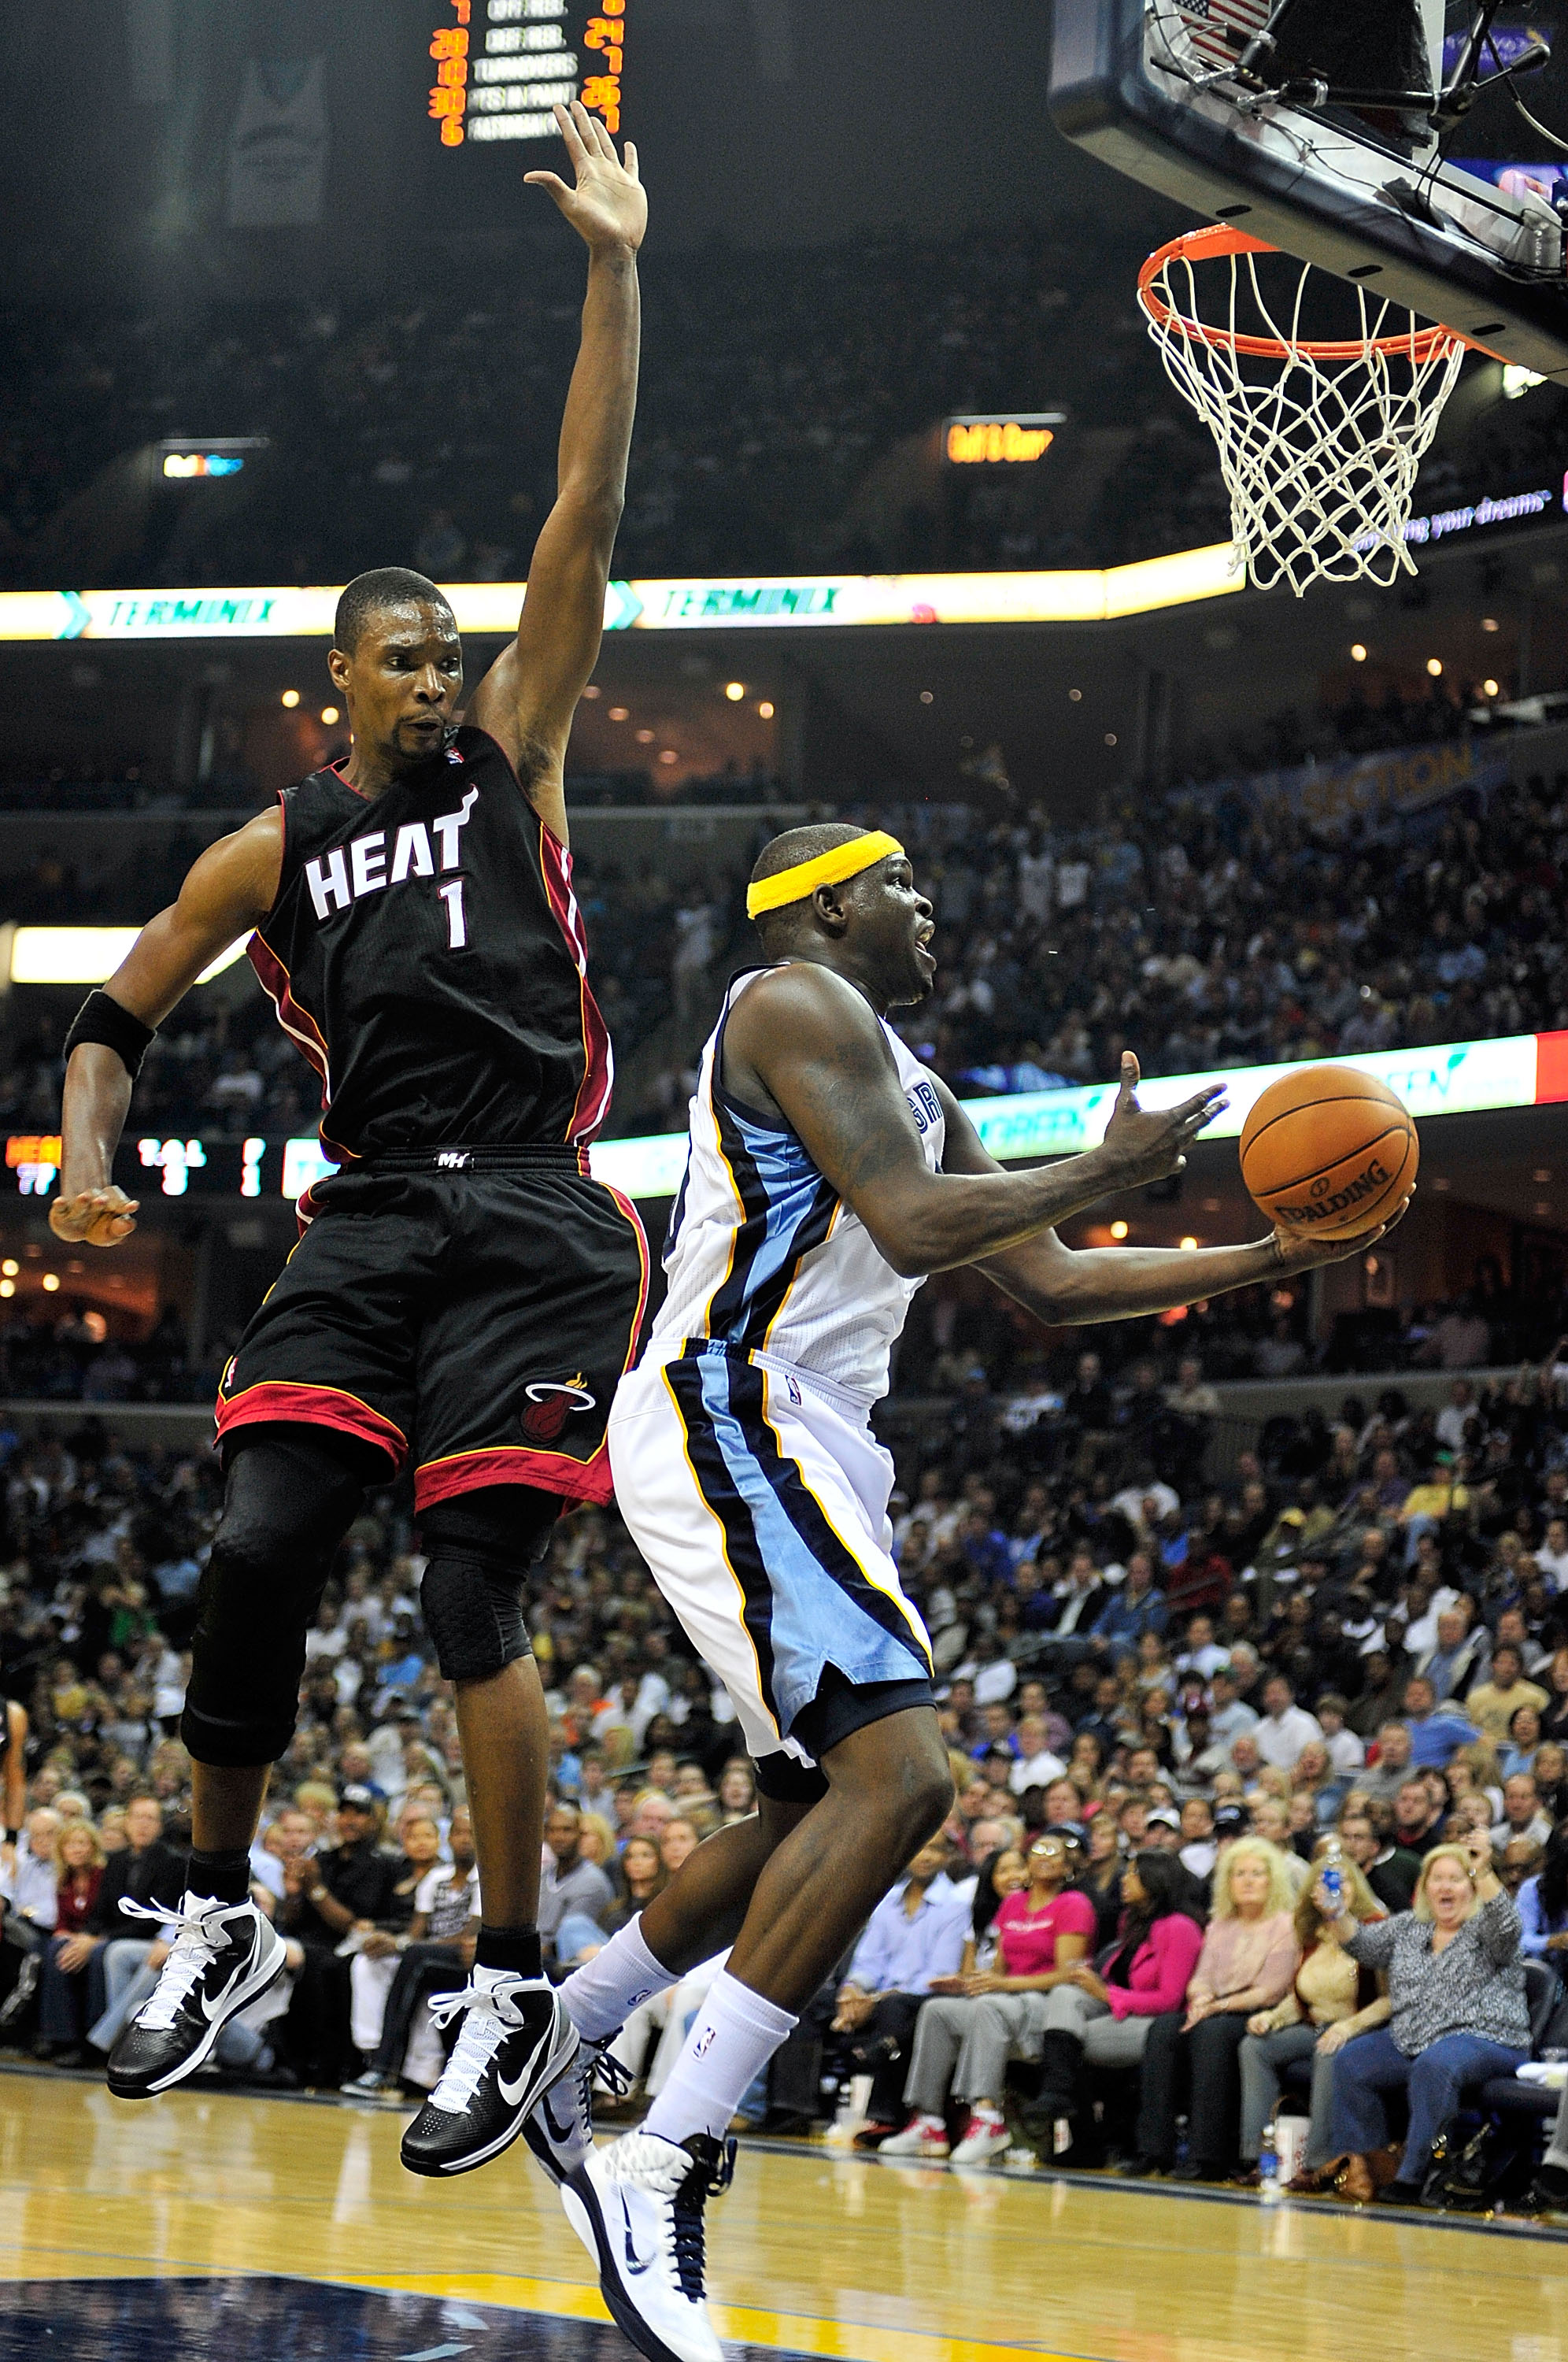 MEMPHIS, TN - NOVEMBER 20:  Zach Randolph #50 of the Memphis Grizzlies drives past Chris Bosh #1 of the Miami Heat at FedExForum on November 20, 2010 in Memphis, Tennessee. The Grizzlies won 97-95.  NOTE TO USER: User expressly acknowledges and agrees tha